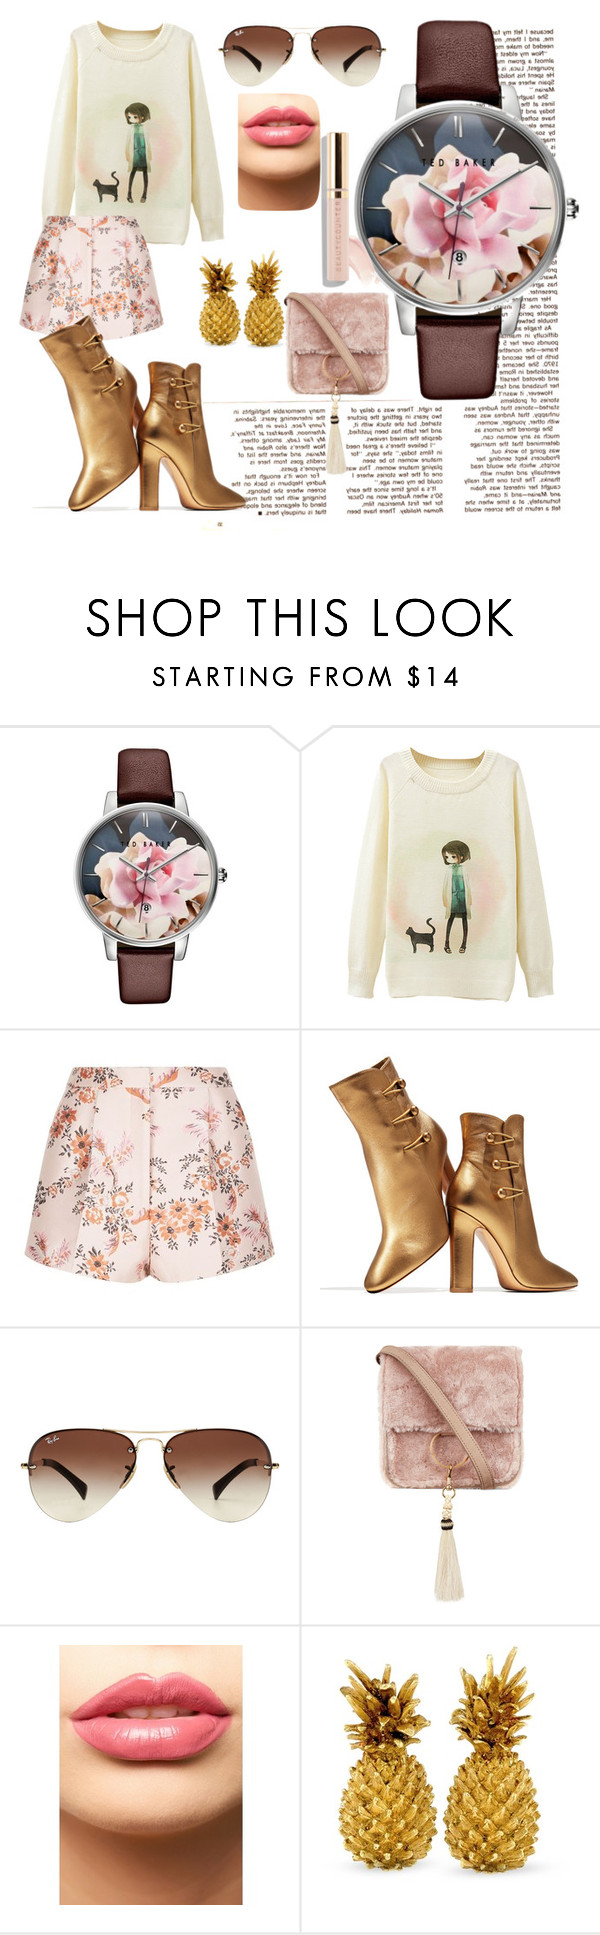 """""""Floral Joy"""" by bwoodcreations on Polyvore featuring Ted Baker, STELLA McCARTNEY, Gianvito Rossi, Ray-Ban, Brother Vellies, LASplash and Beautycounter"""